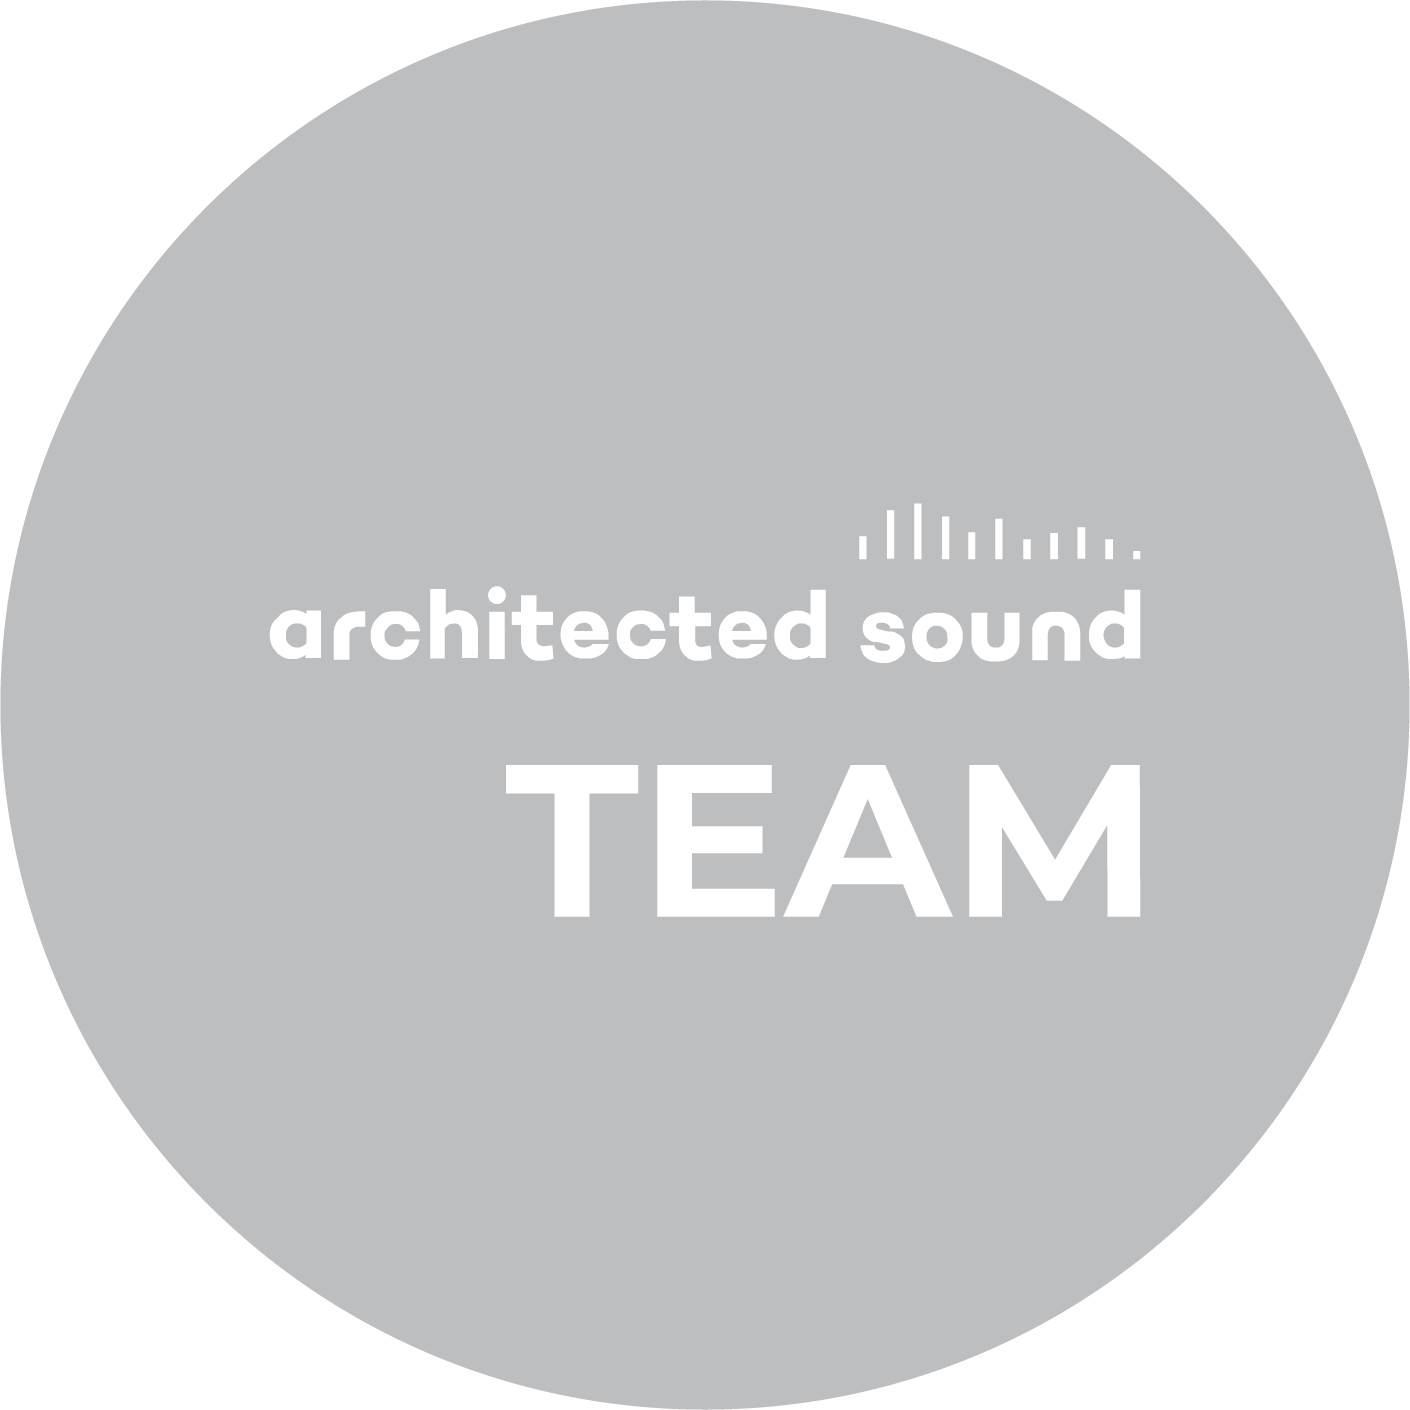 Architected Sound Team